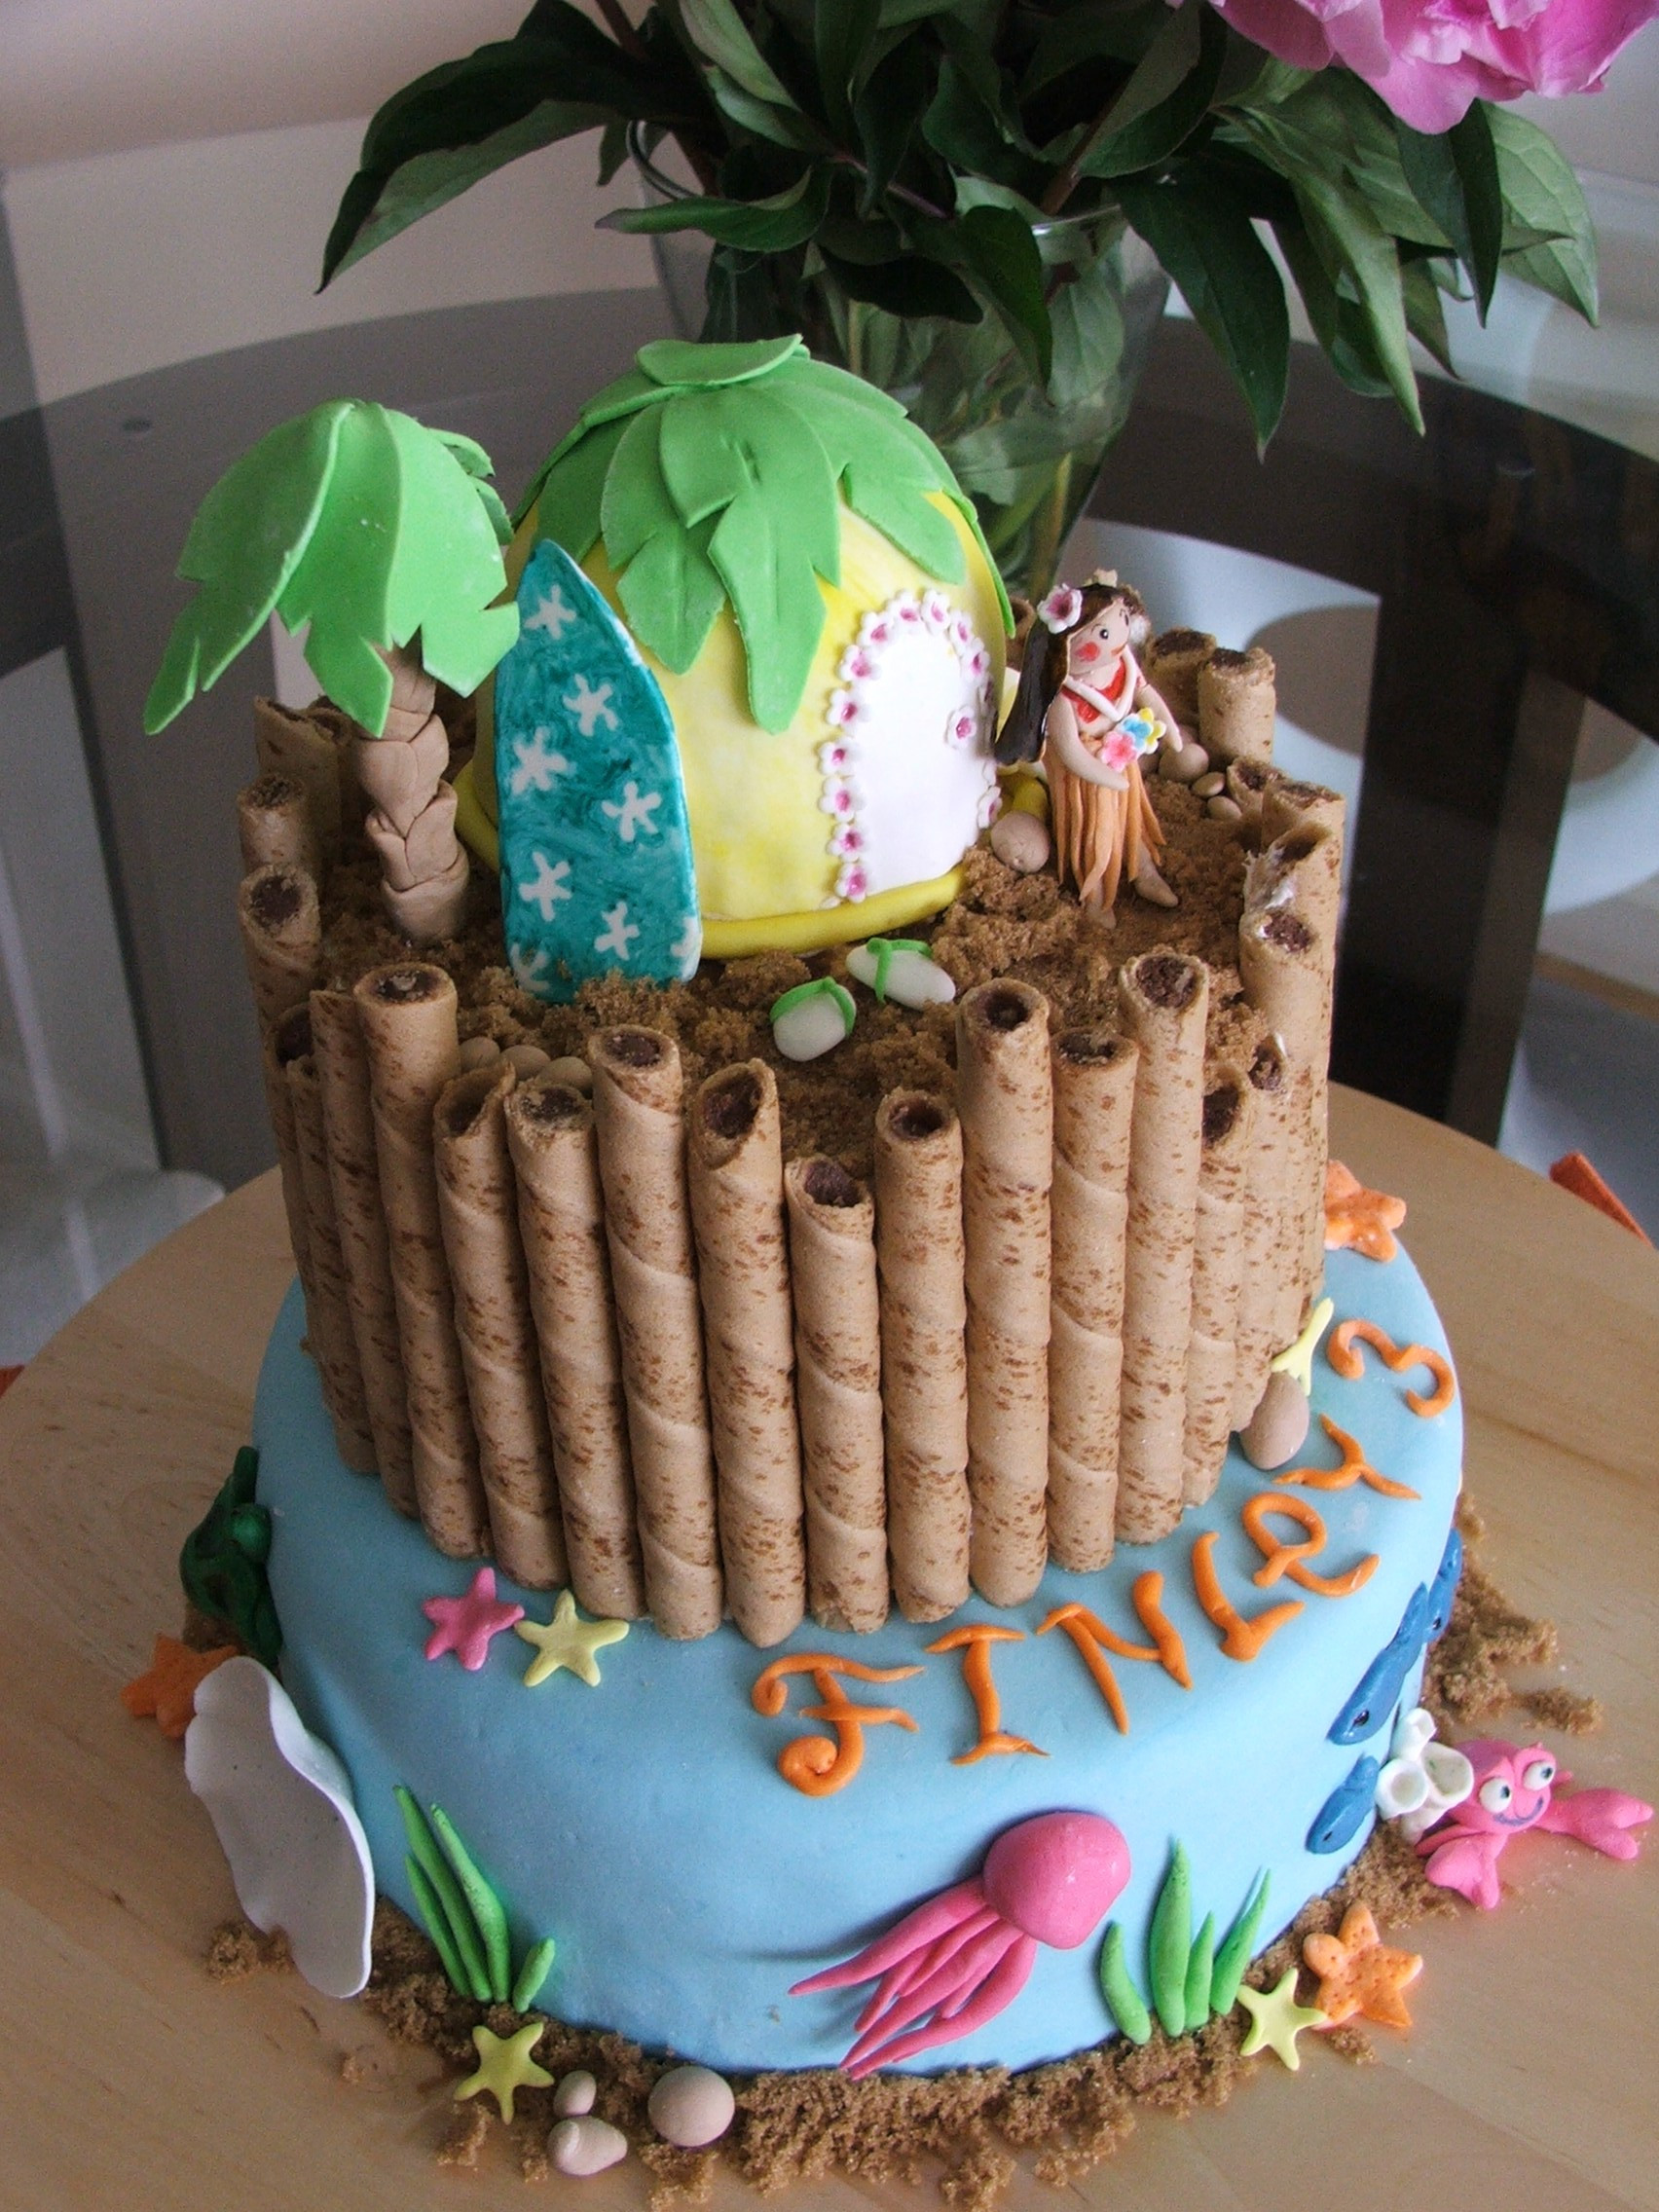 Best ideas about Cake Birthday . Save or Pin Birthday Cakes Cakes Inc Now.